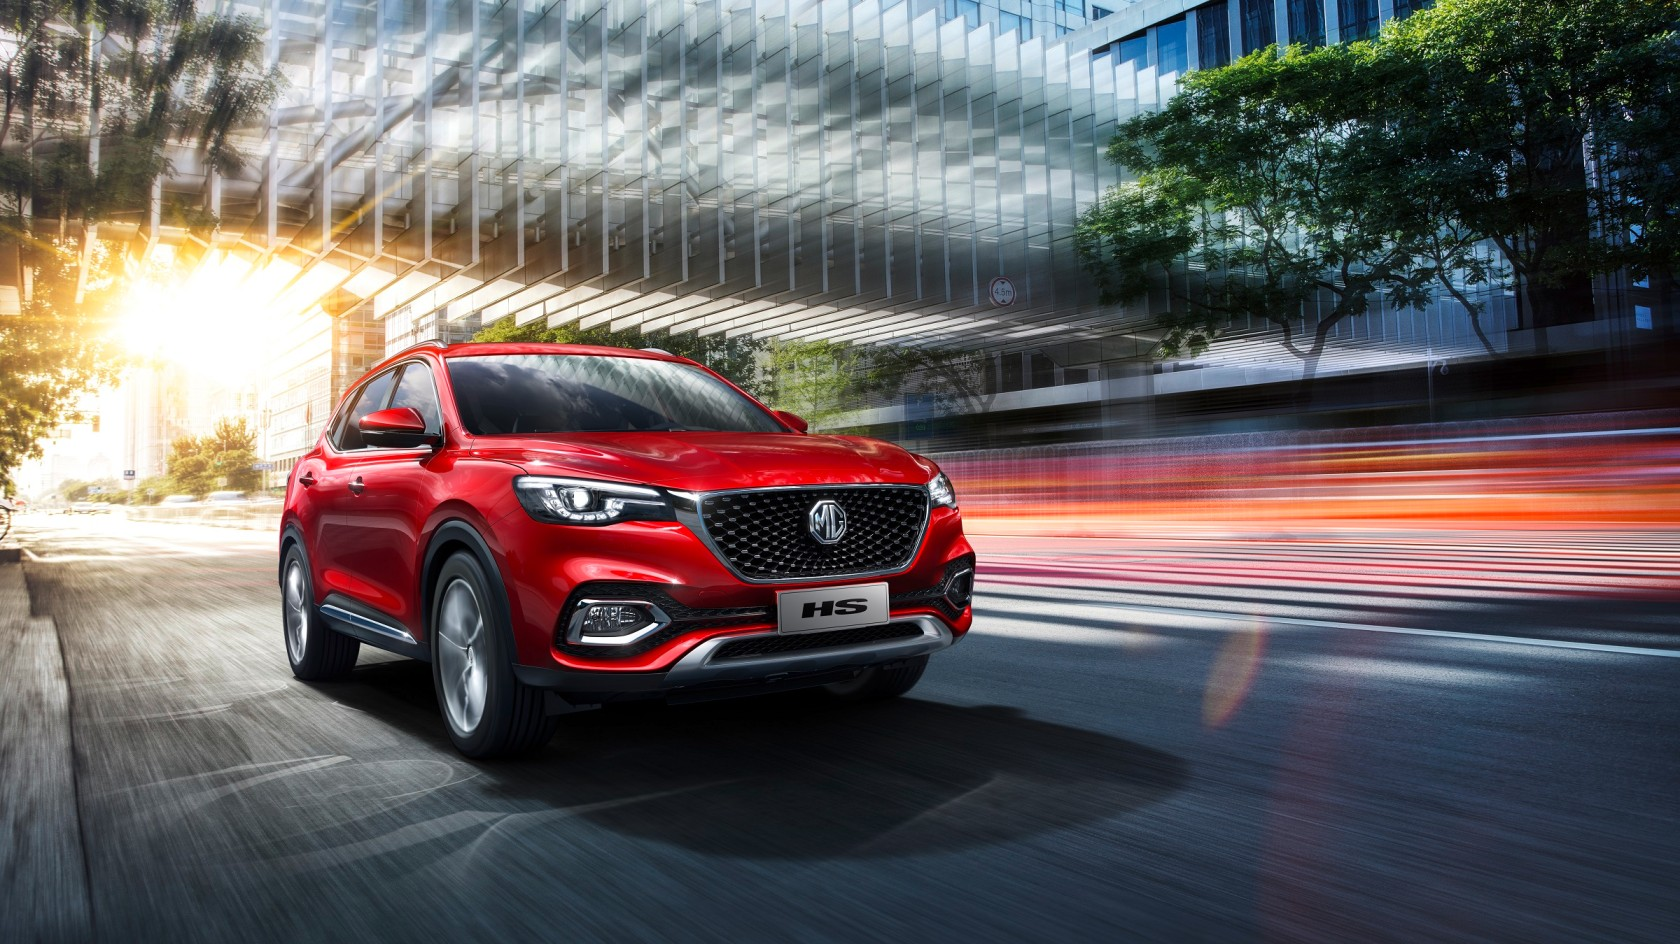 MG Motors to Launch an All-New E-Commerce Platform to Enhance Customers' Experience